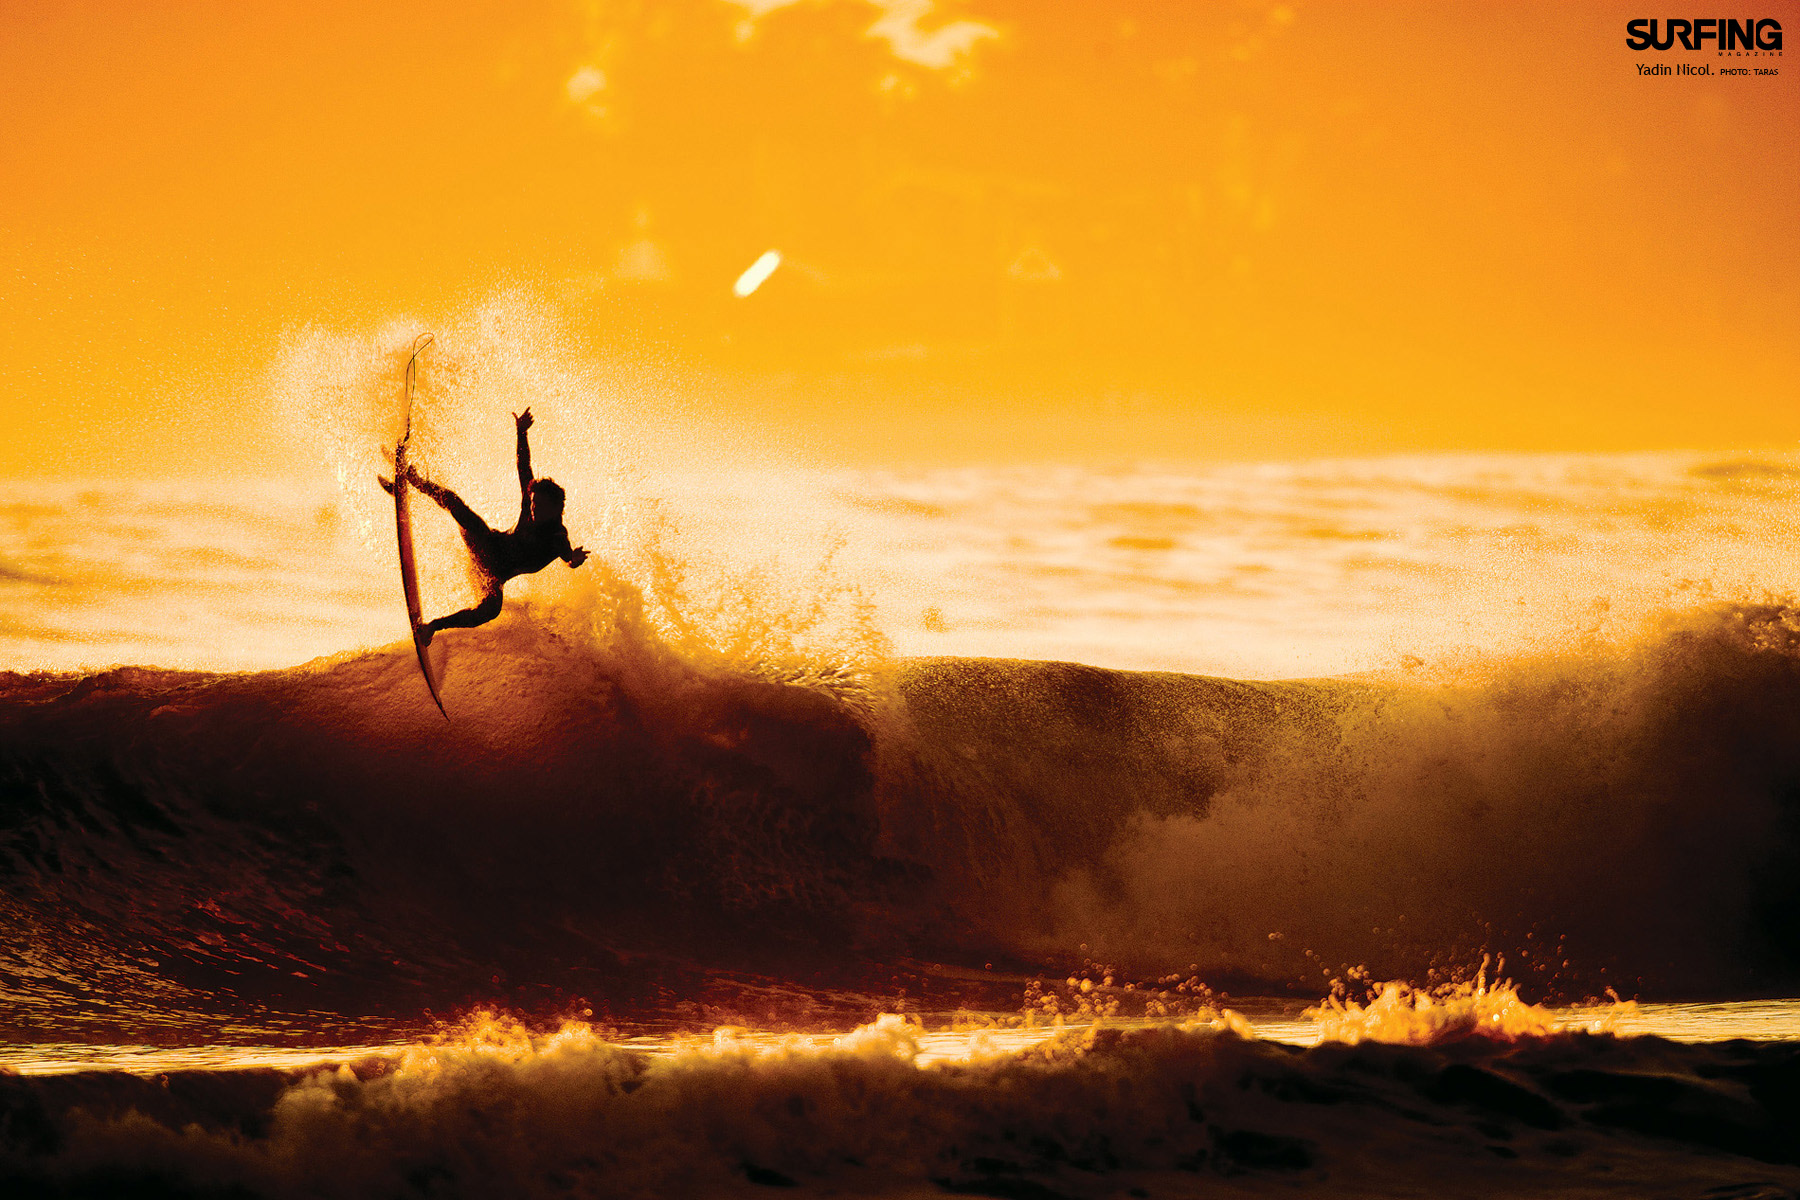 May Issue Wallpaper | SURFING Magazine